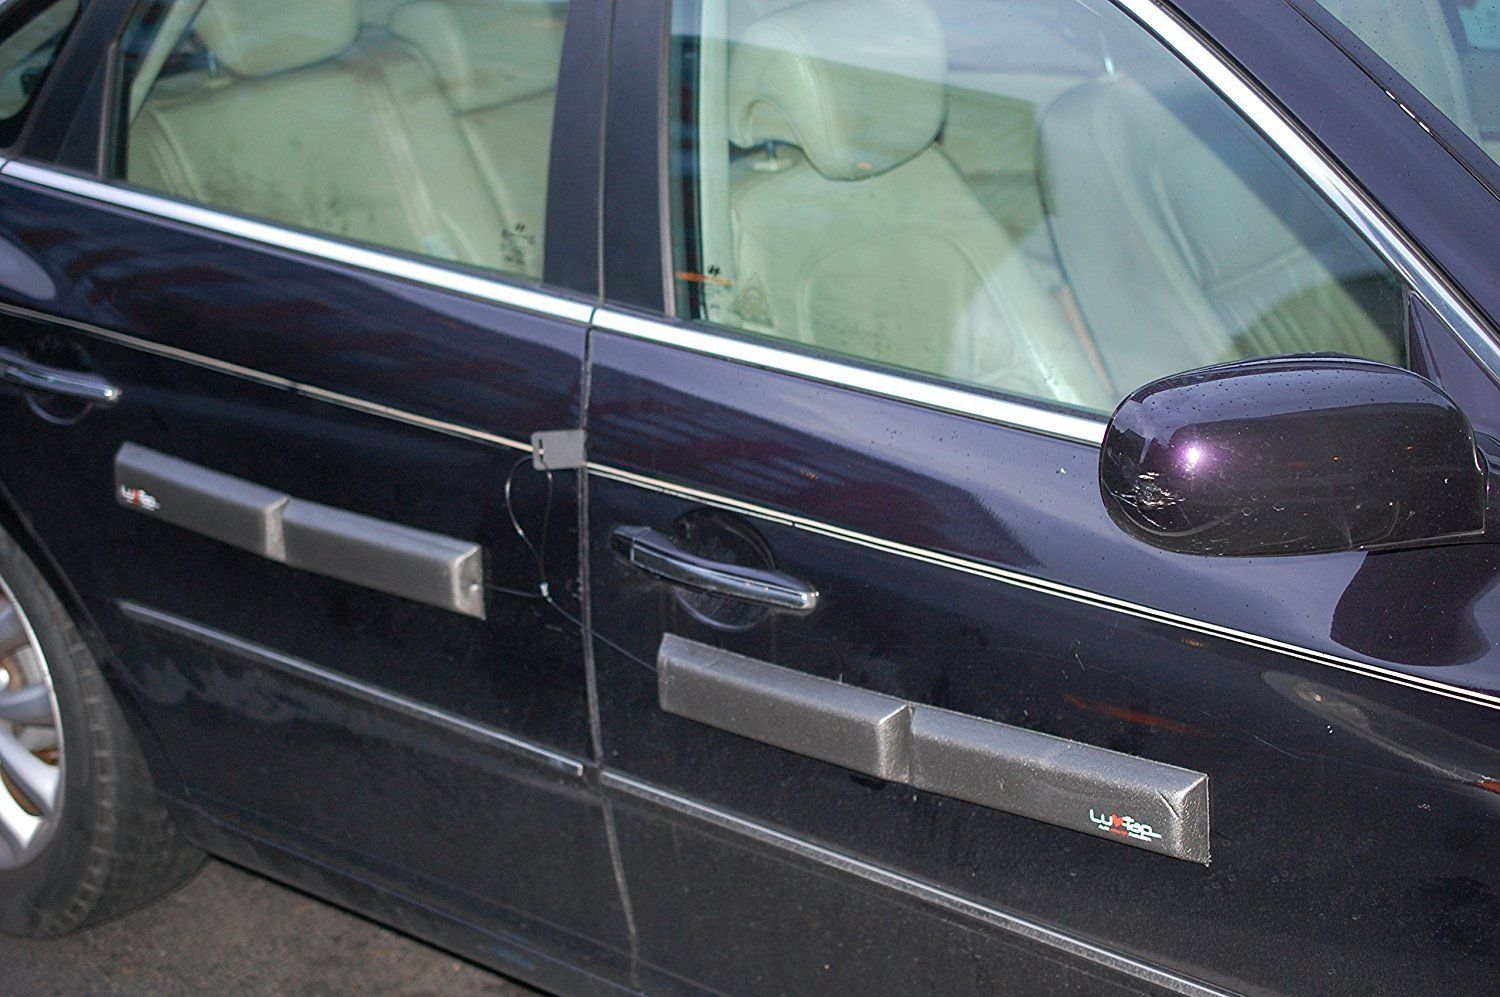 Ding Bats Removable Magnetic Car Door Protectors With Security